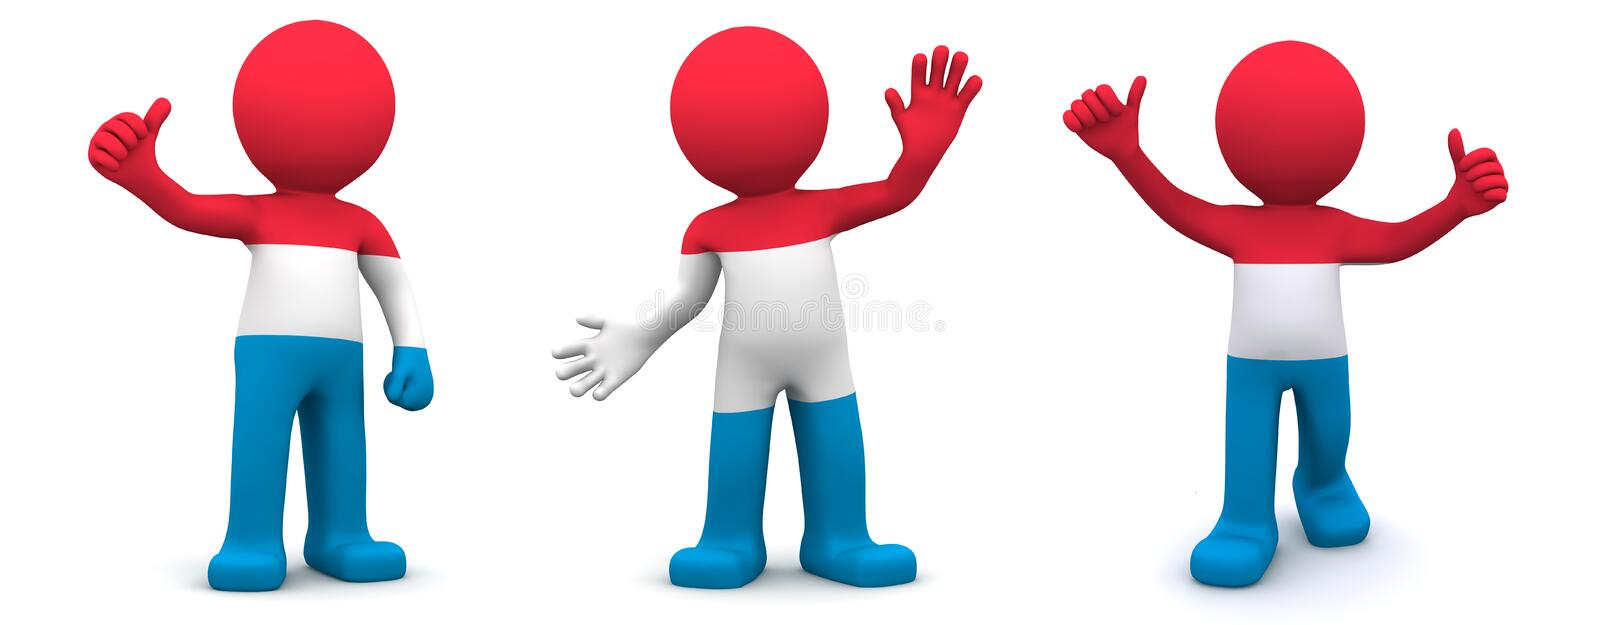 3d character textured with flag of Luxembourg. Isolated on white background royalty free illustration